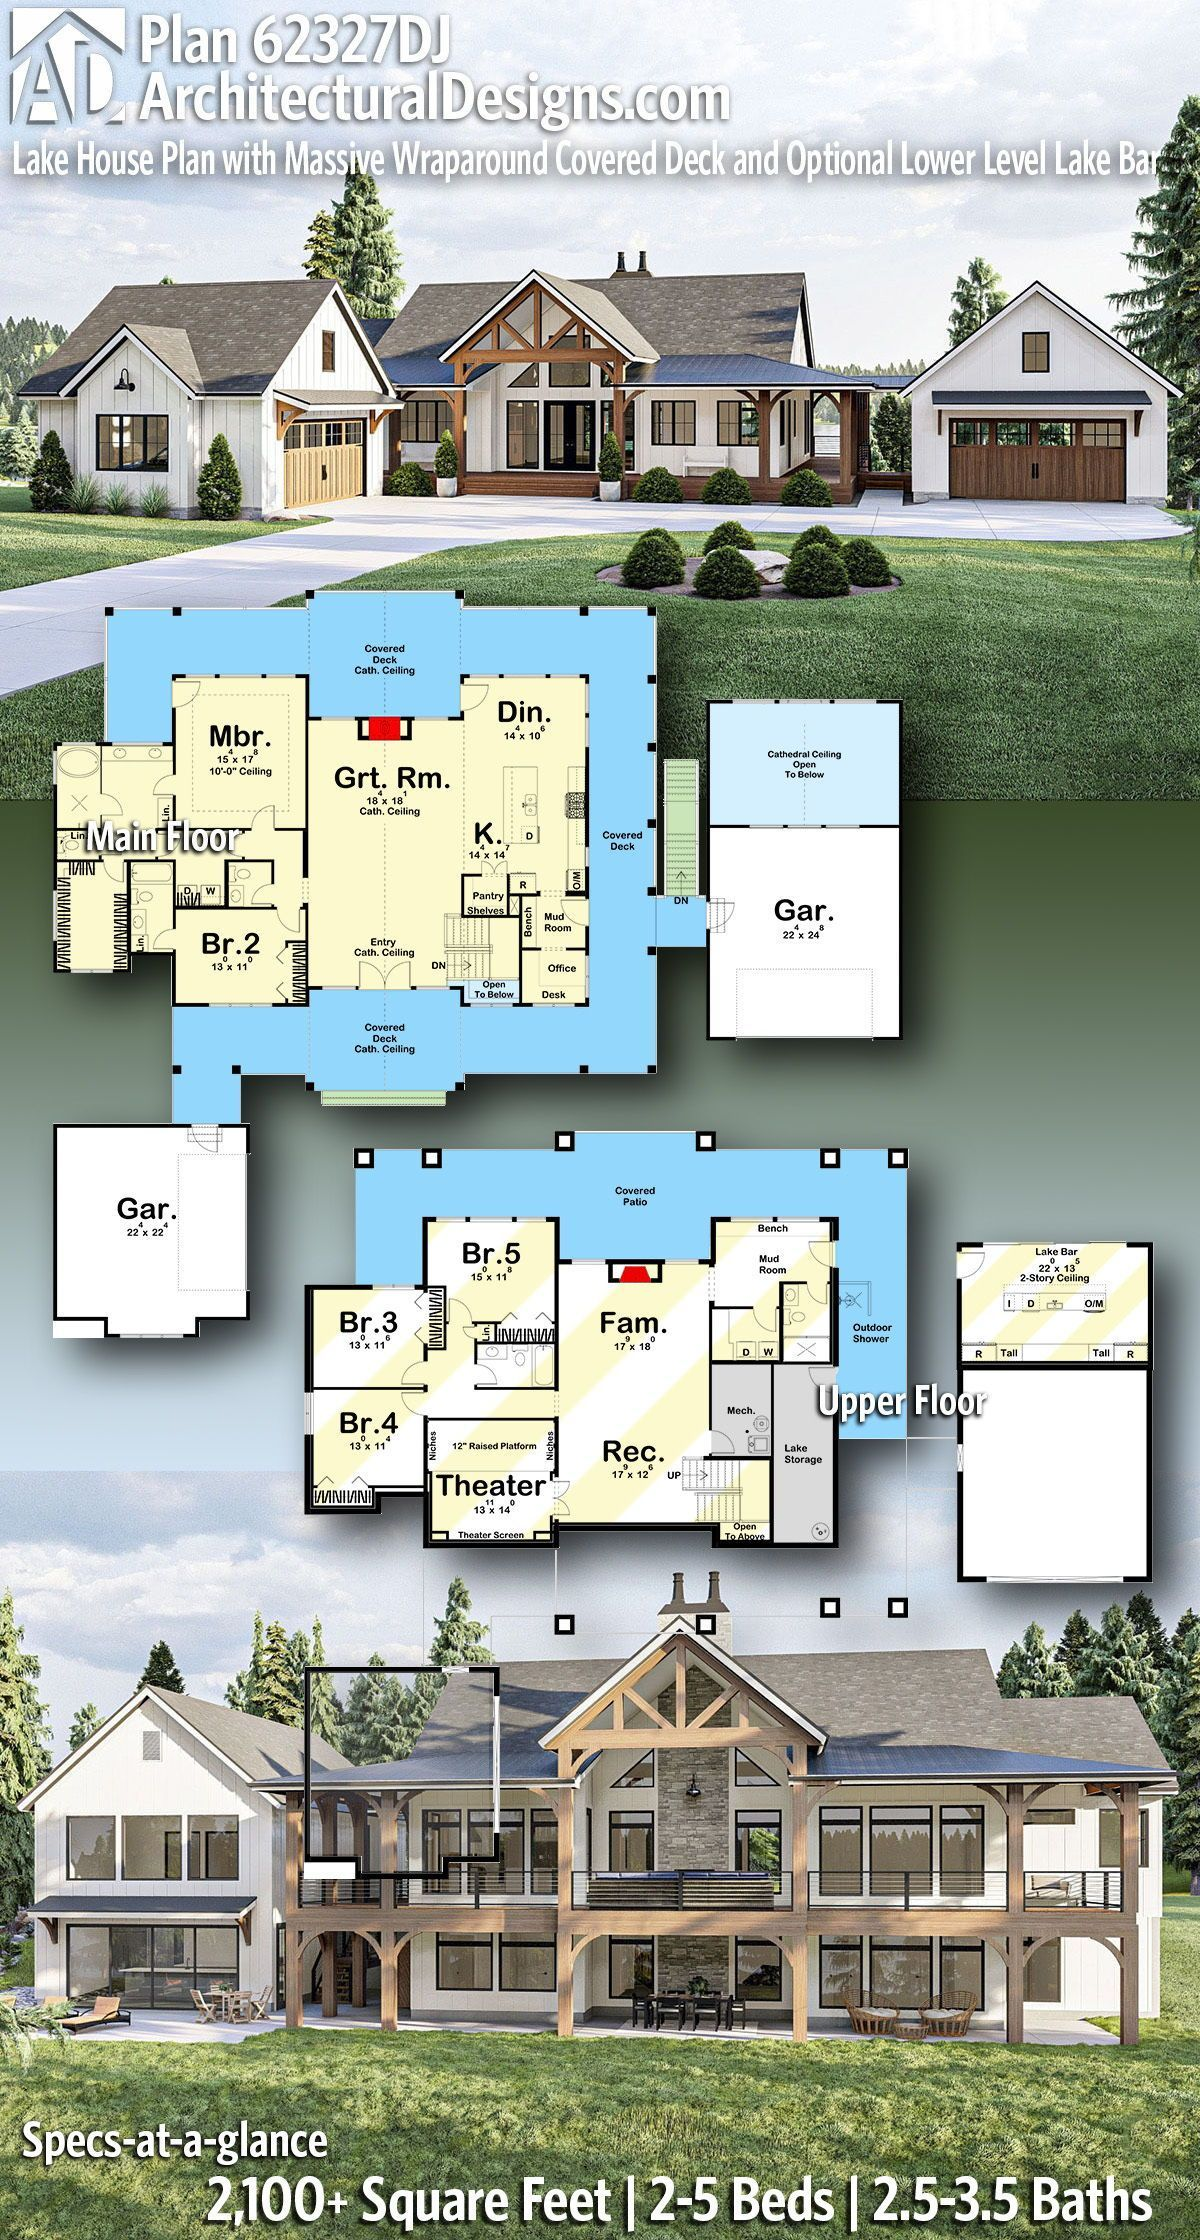 Plan 62327DJ: Lake House Plan with Massive Wraparound Covered Deck and Optional Lower Level Lake Bar